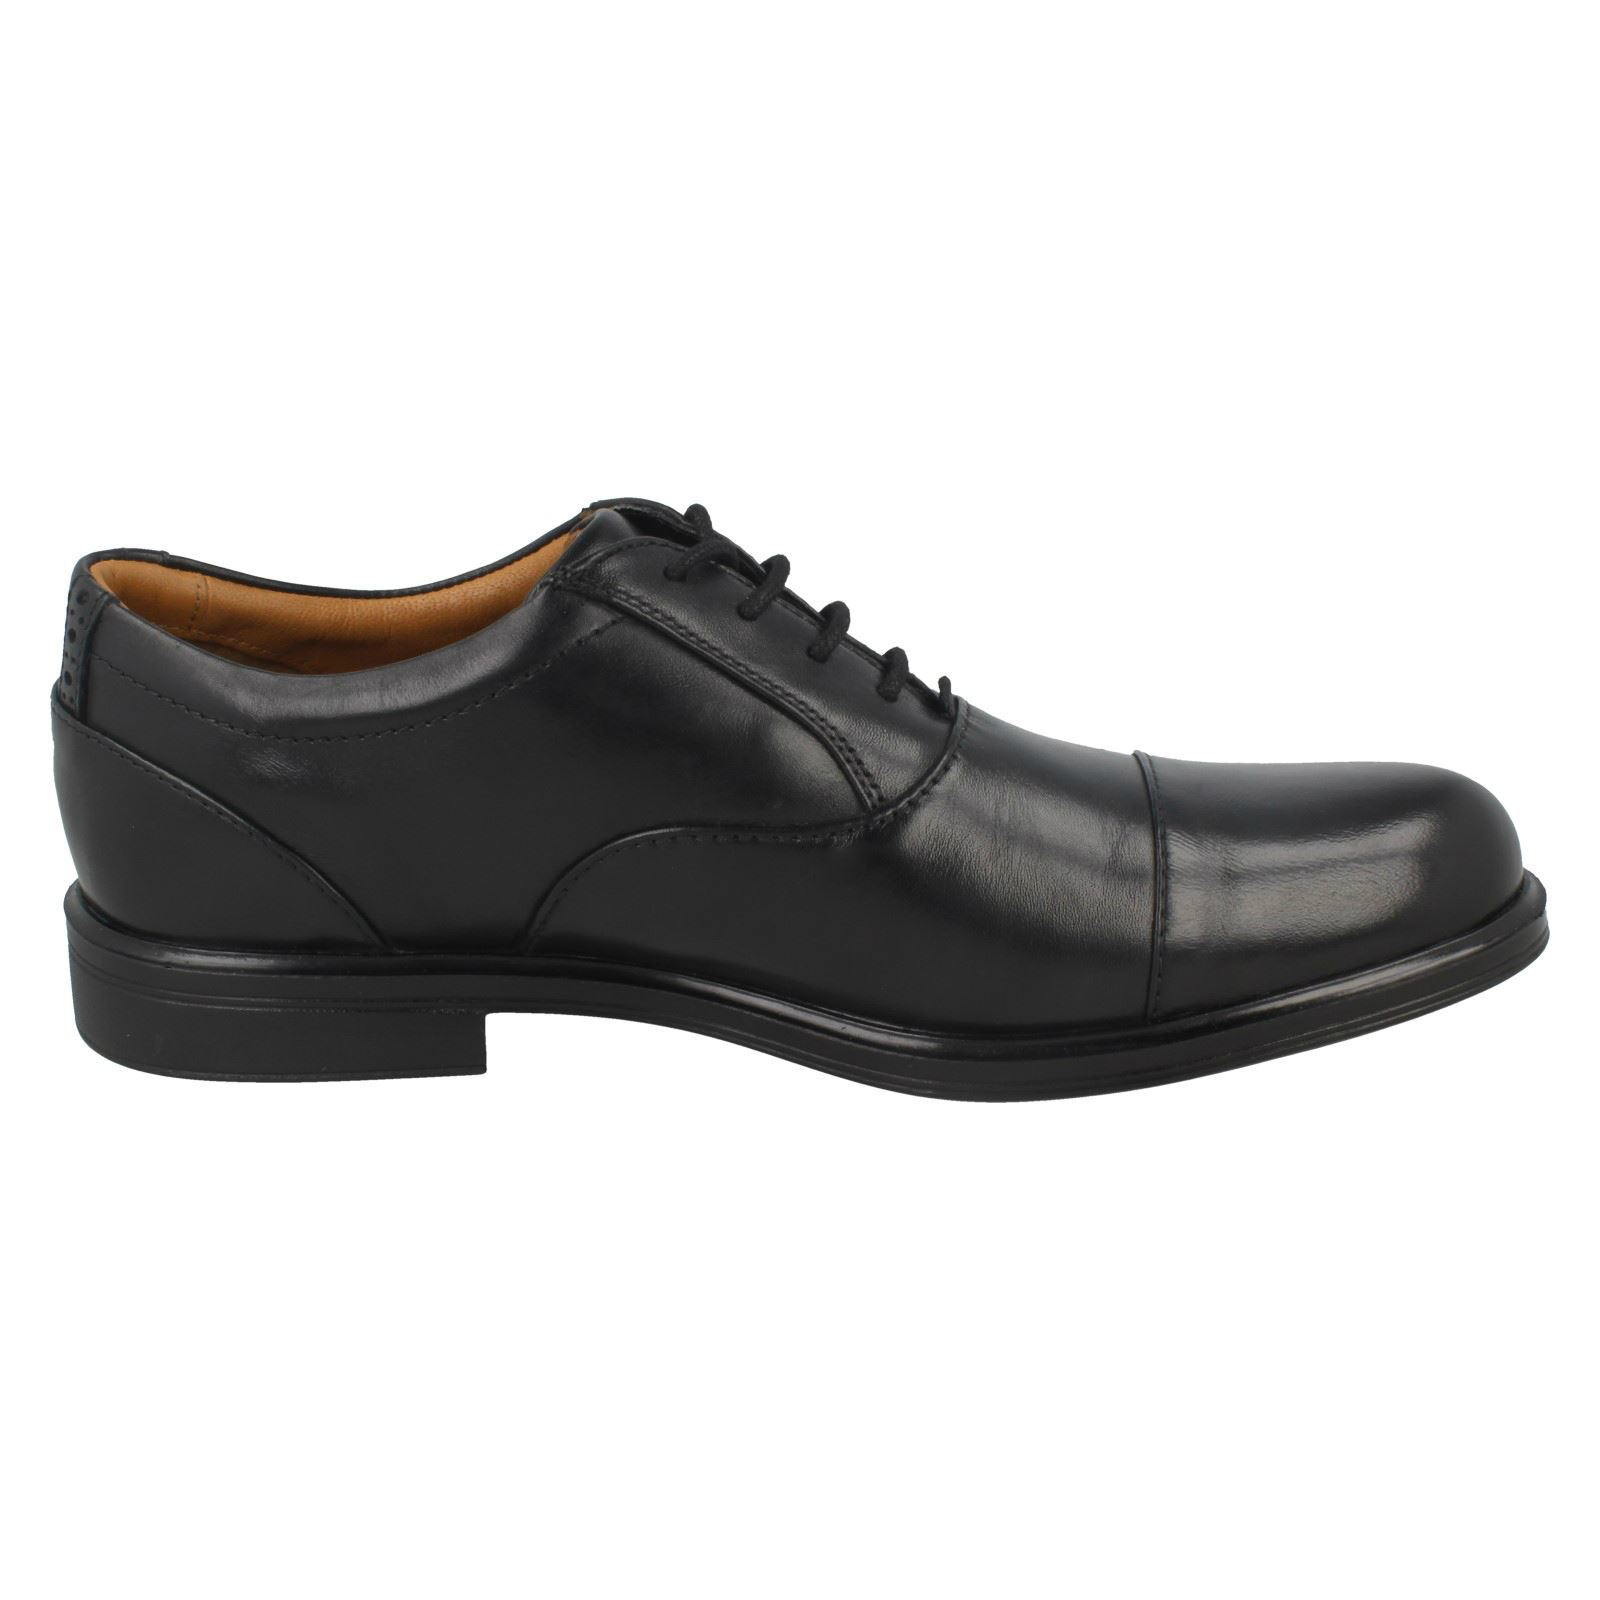 Lace Uomo Clarks Formal Oxford Lace  Up Schuhes Gabson Cap 6569e8